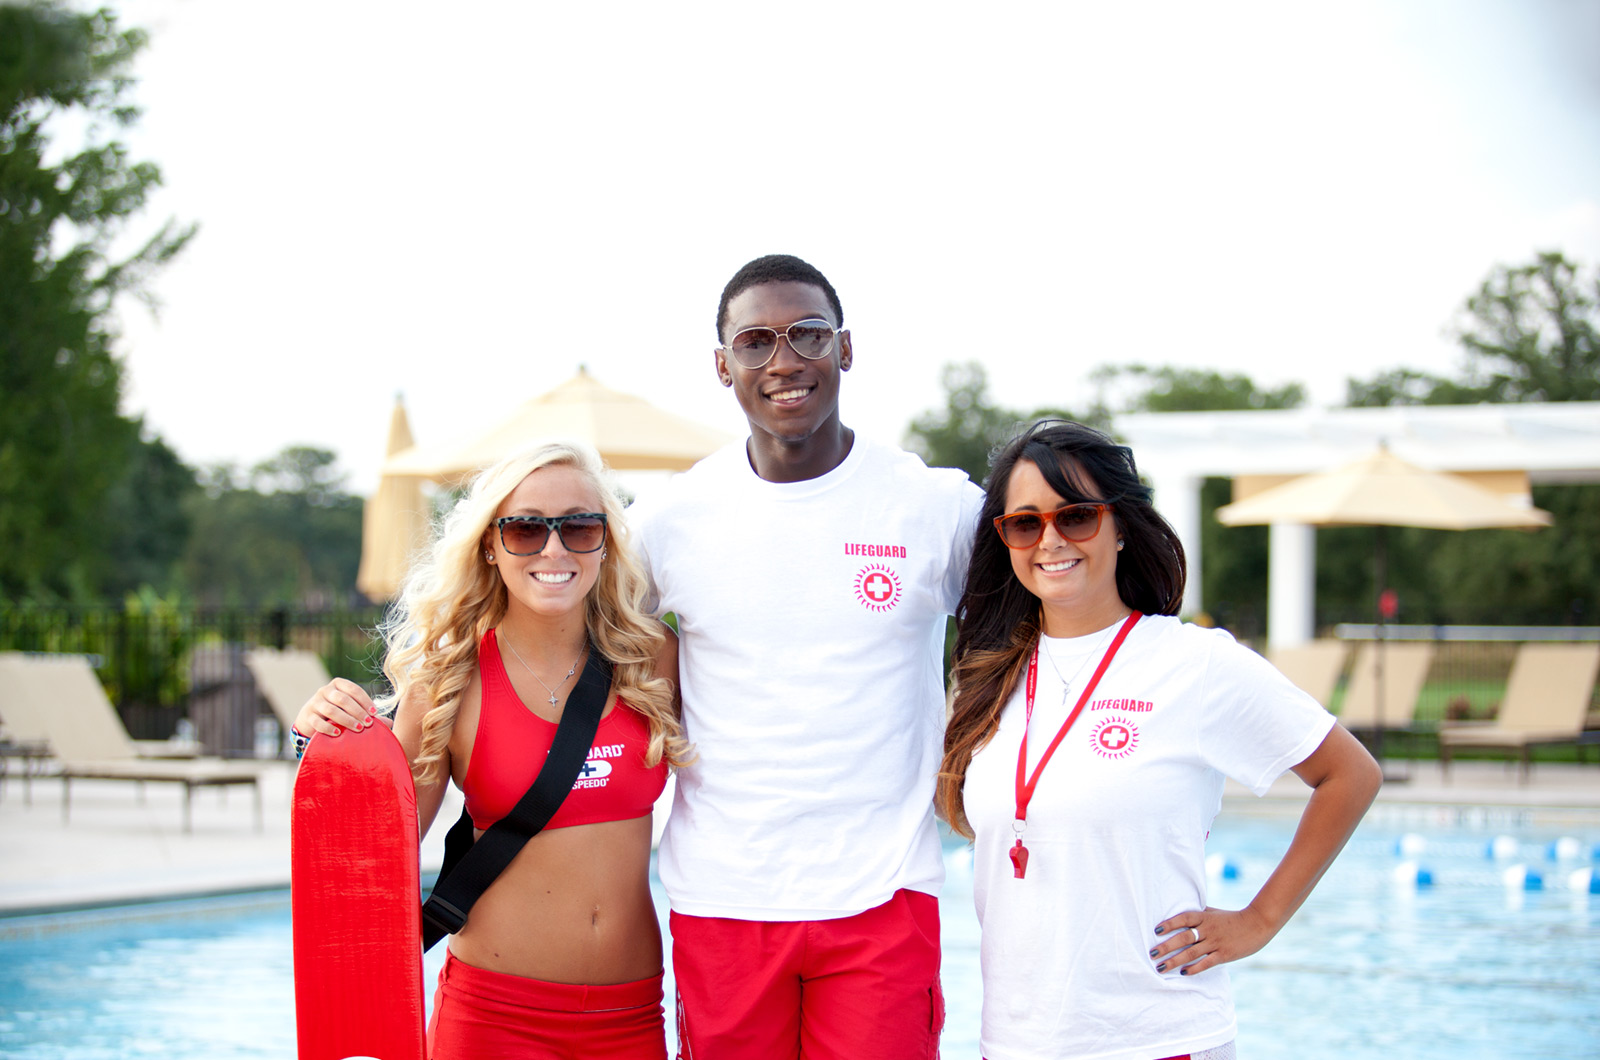 lifeguard brooklyn jobs